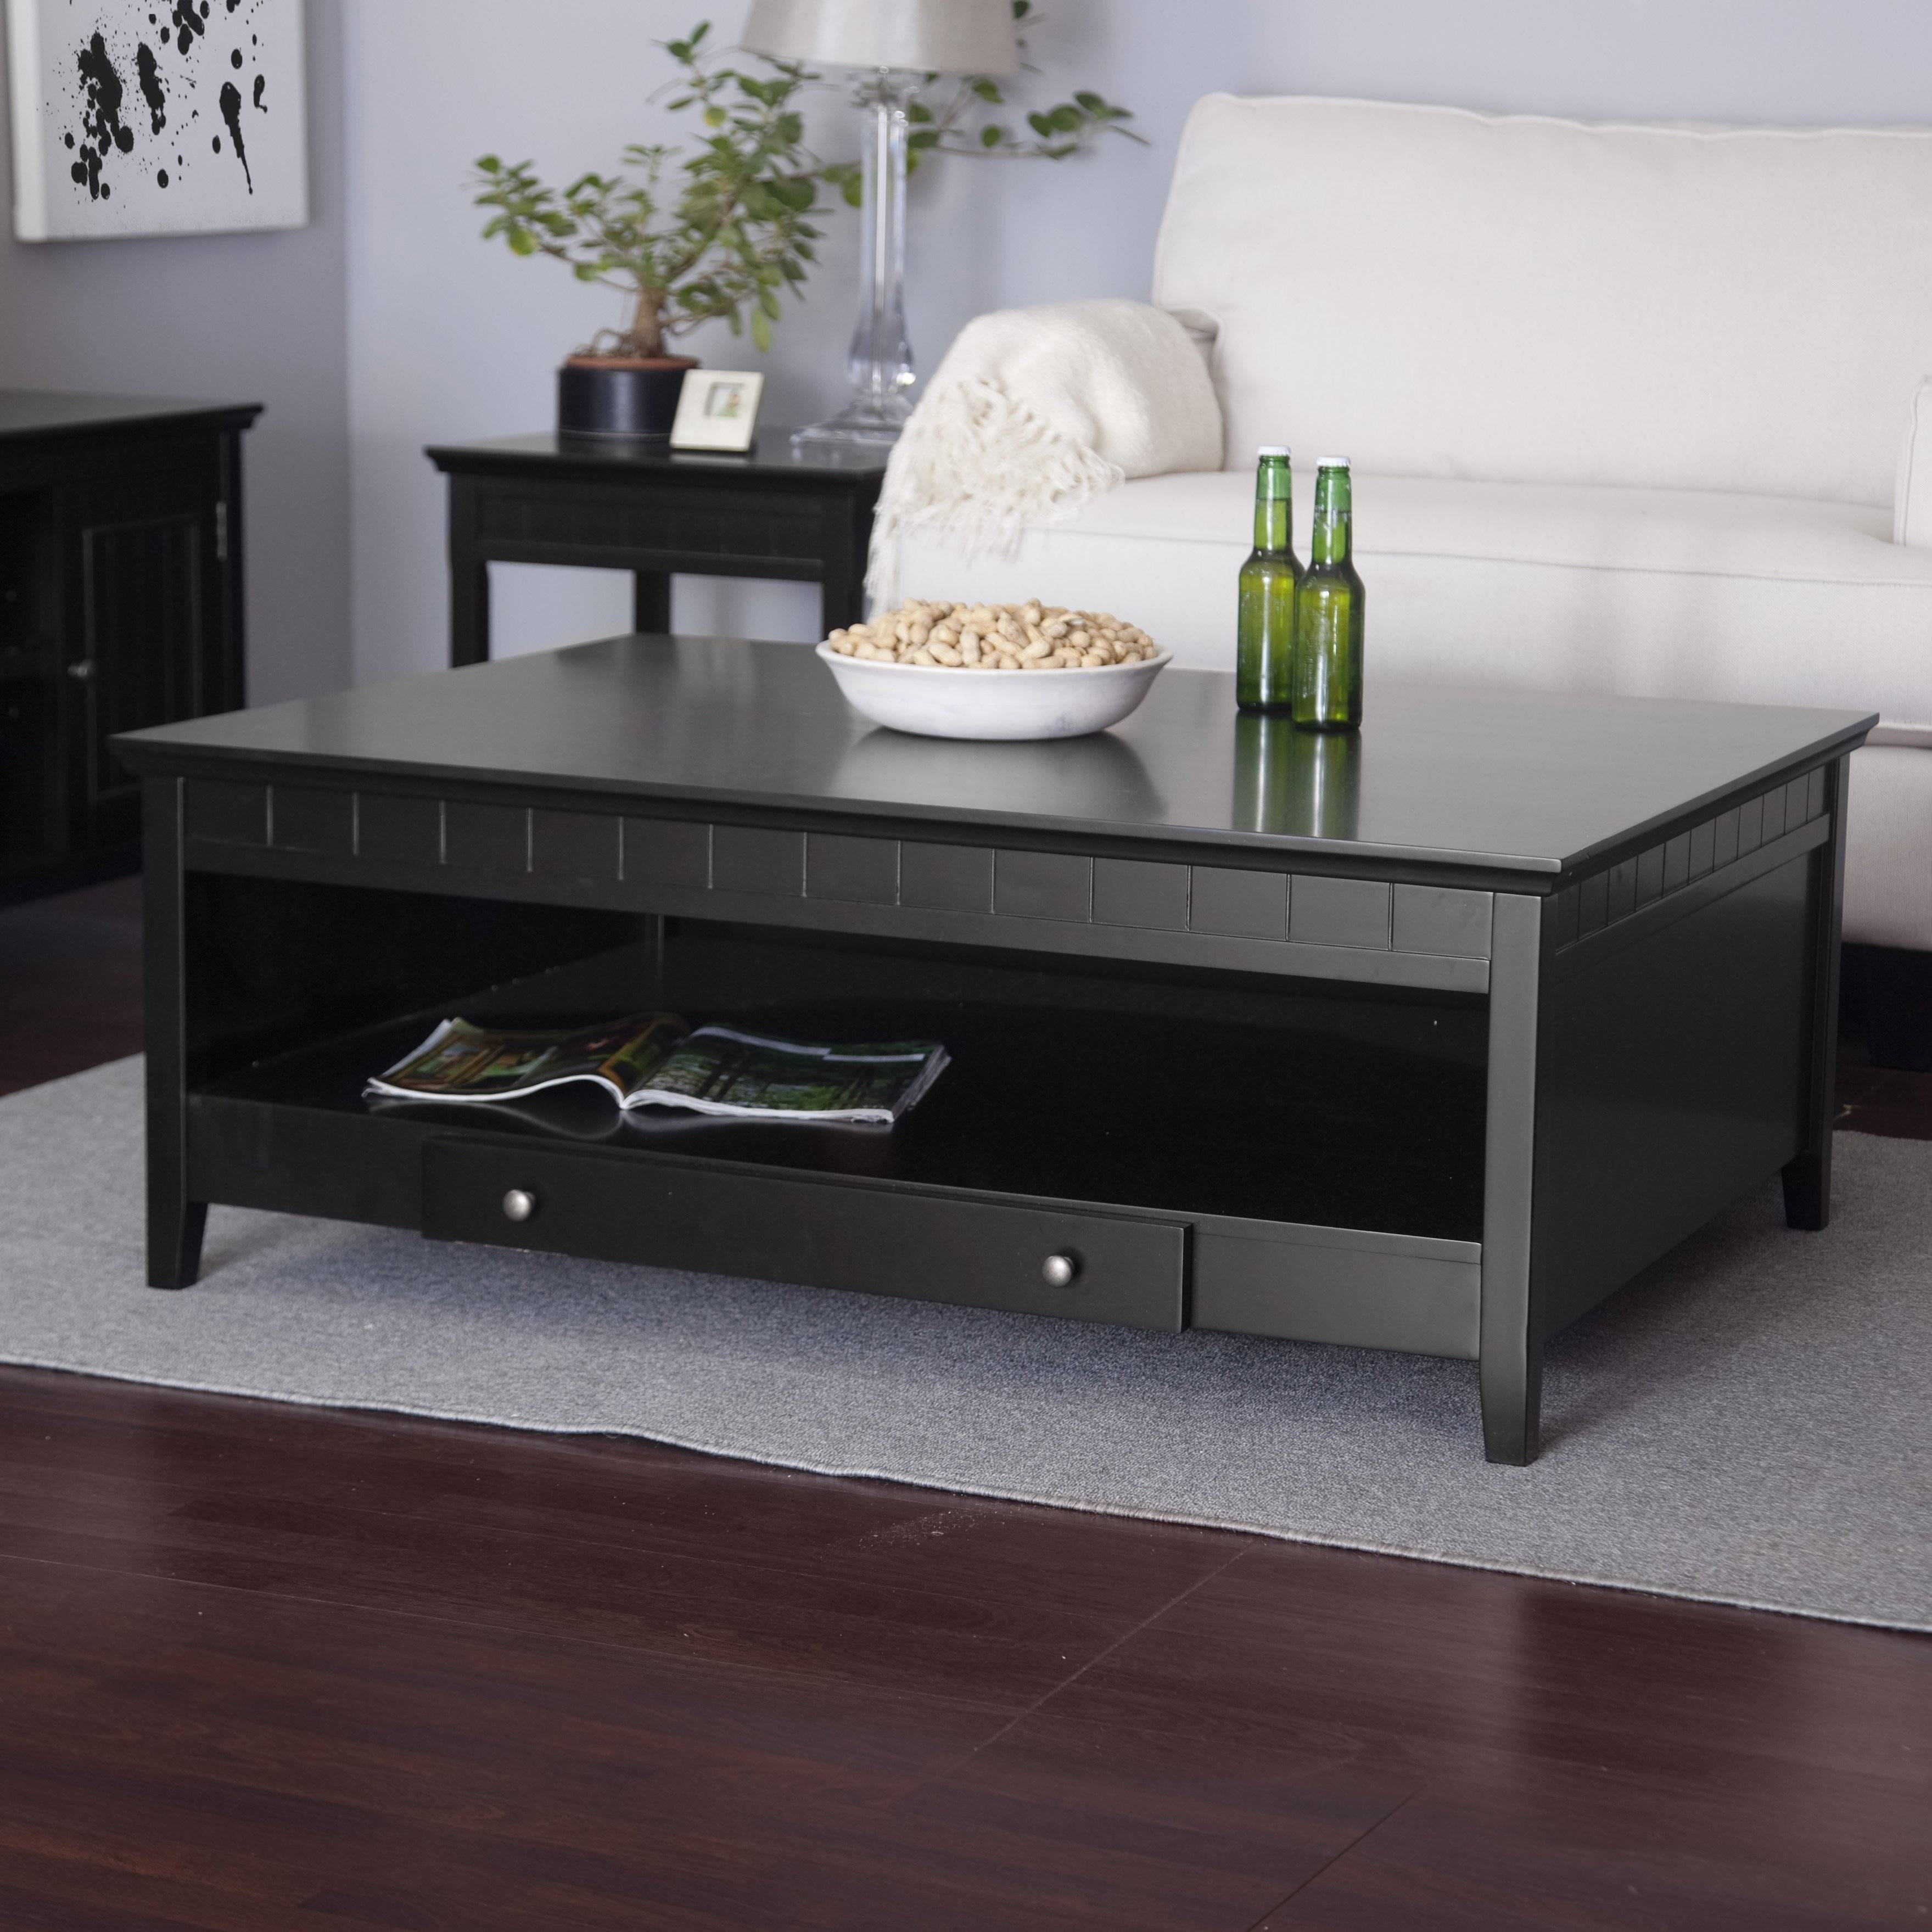 Excellent Square Coffee Tables With Storage Pictures Decoration with regard to Dark Wood Square Coffee Tables (Image 14 of 30)